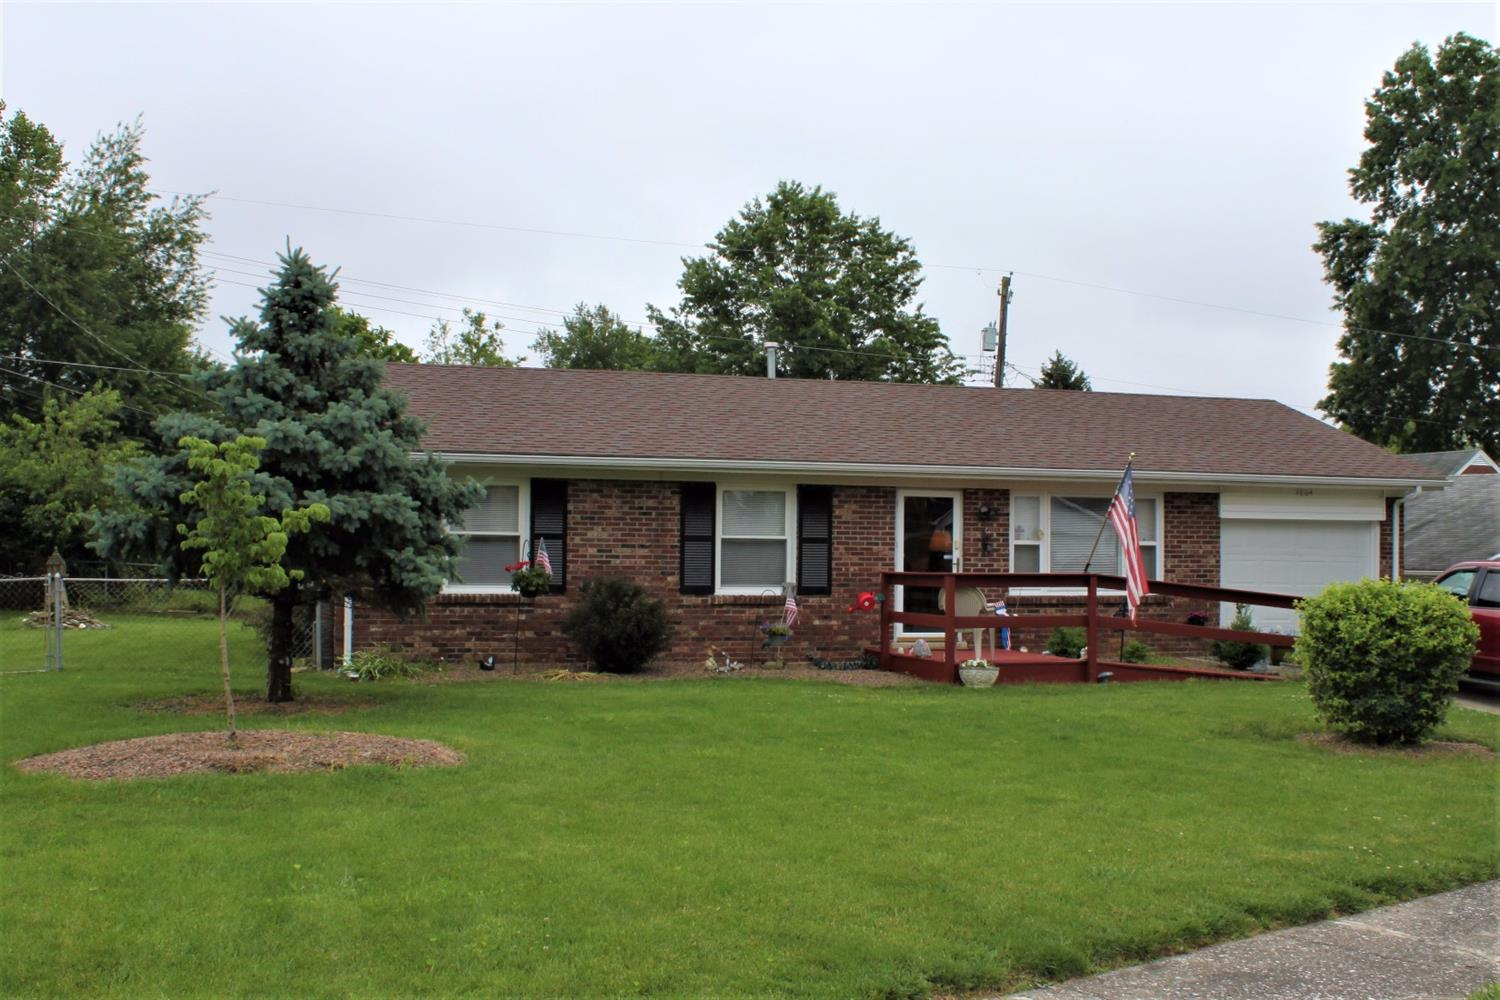 Home For Sale at 1805 Courtland Dr, Lexington, KY 40505-2310